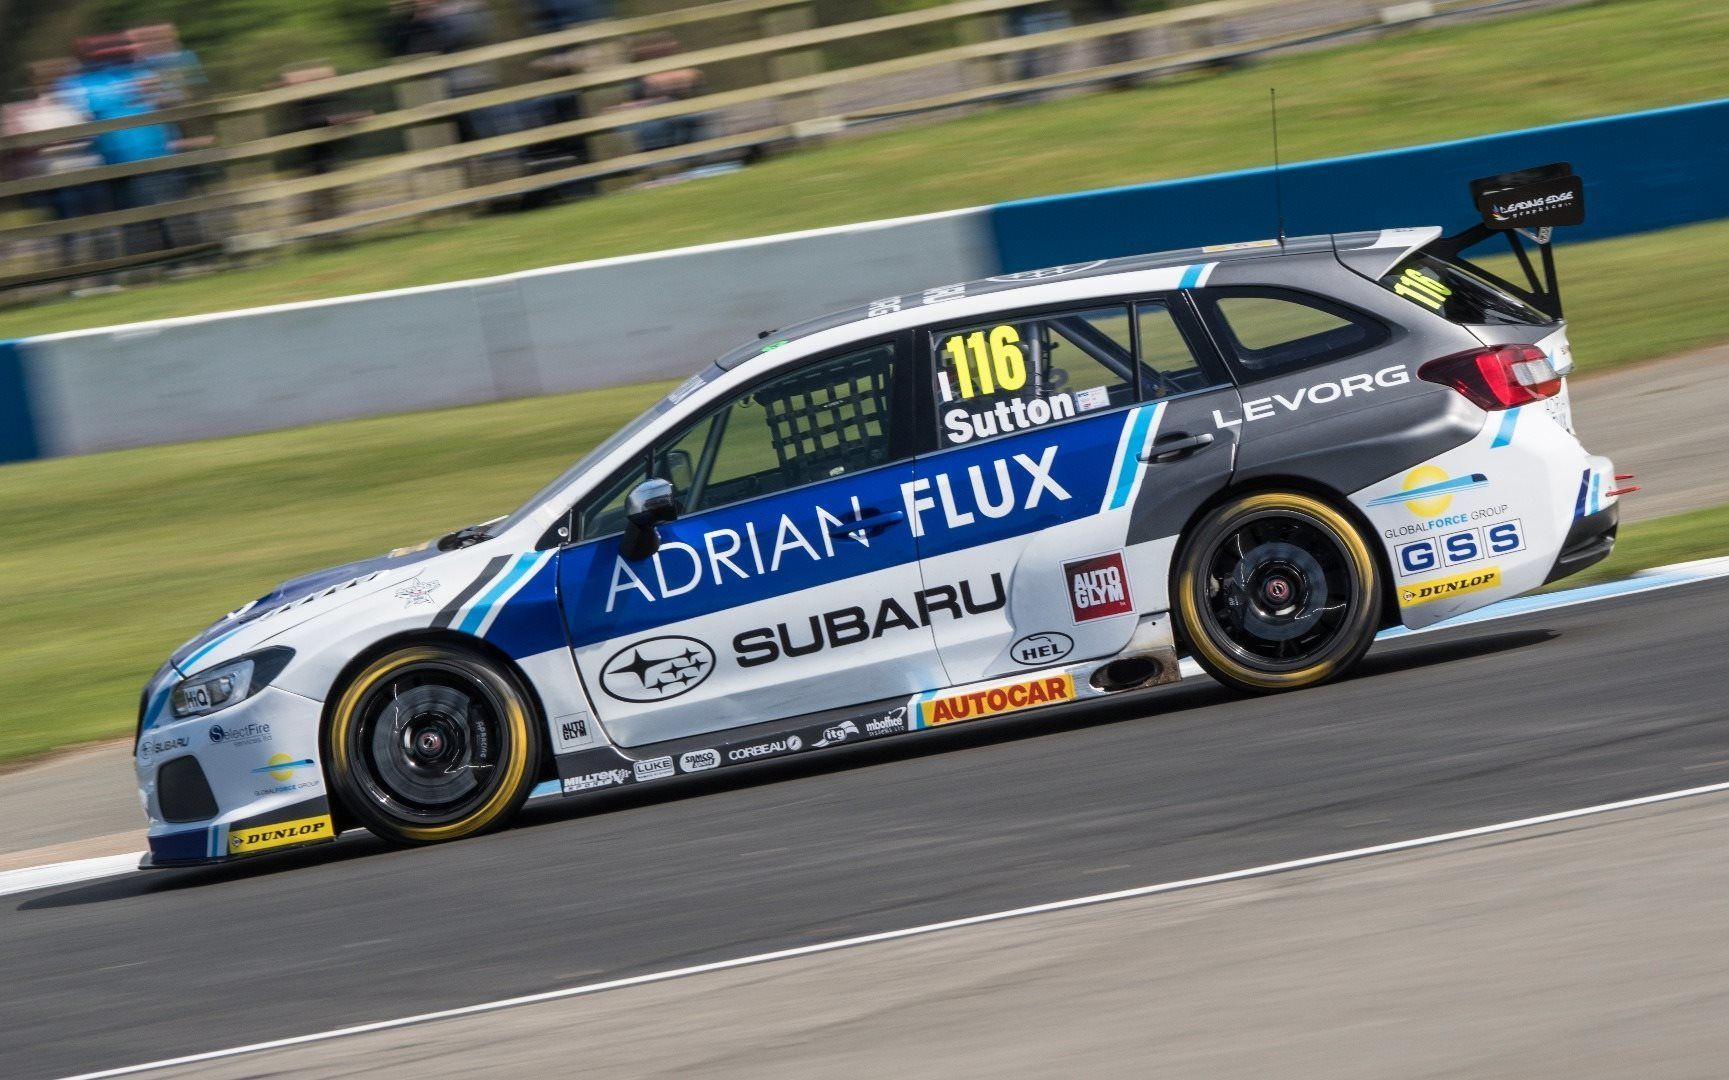 DONINGTON PARK SUBARU RACE REPORT